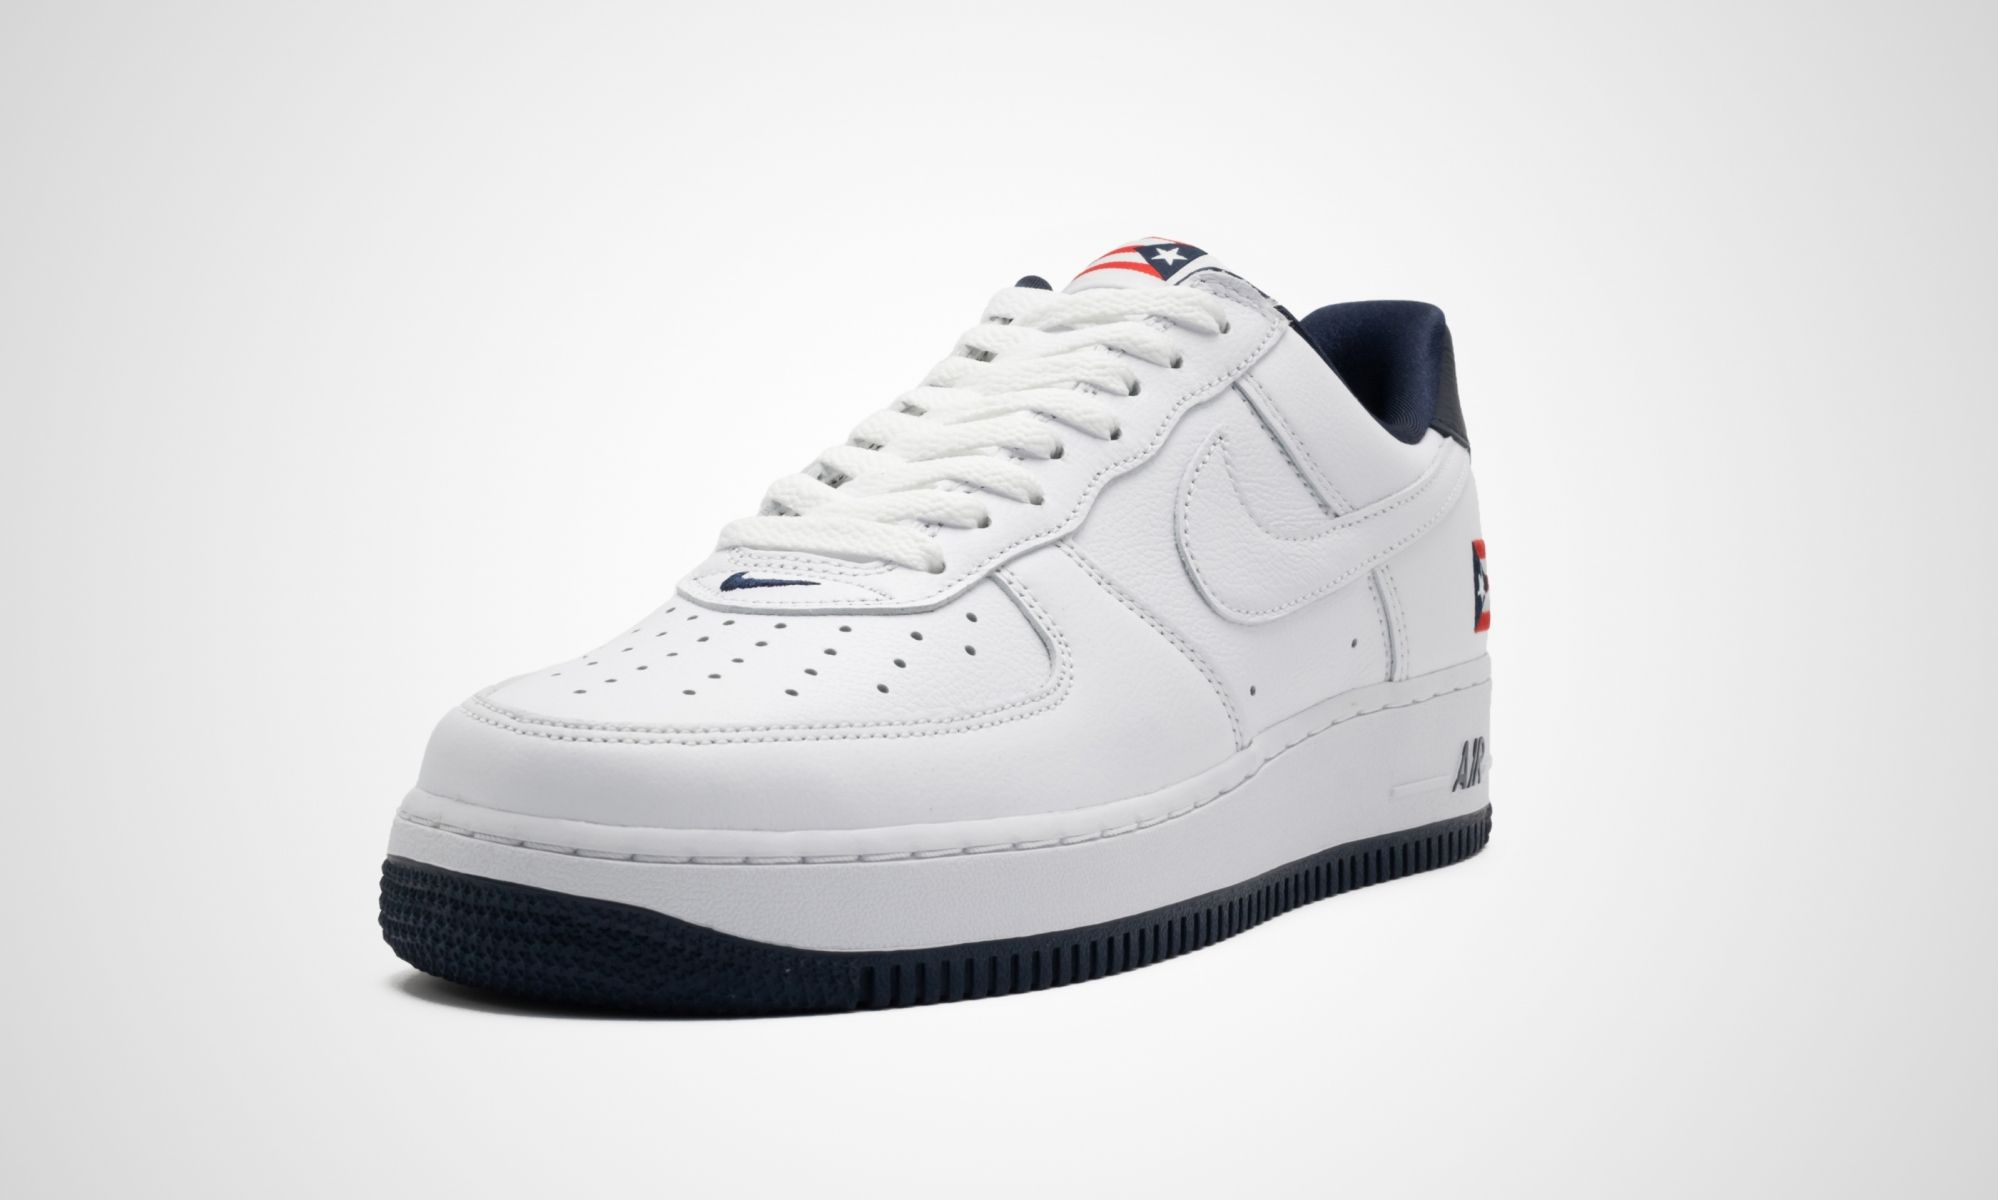 Nike Air Force 1 Puerto Rico Angled